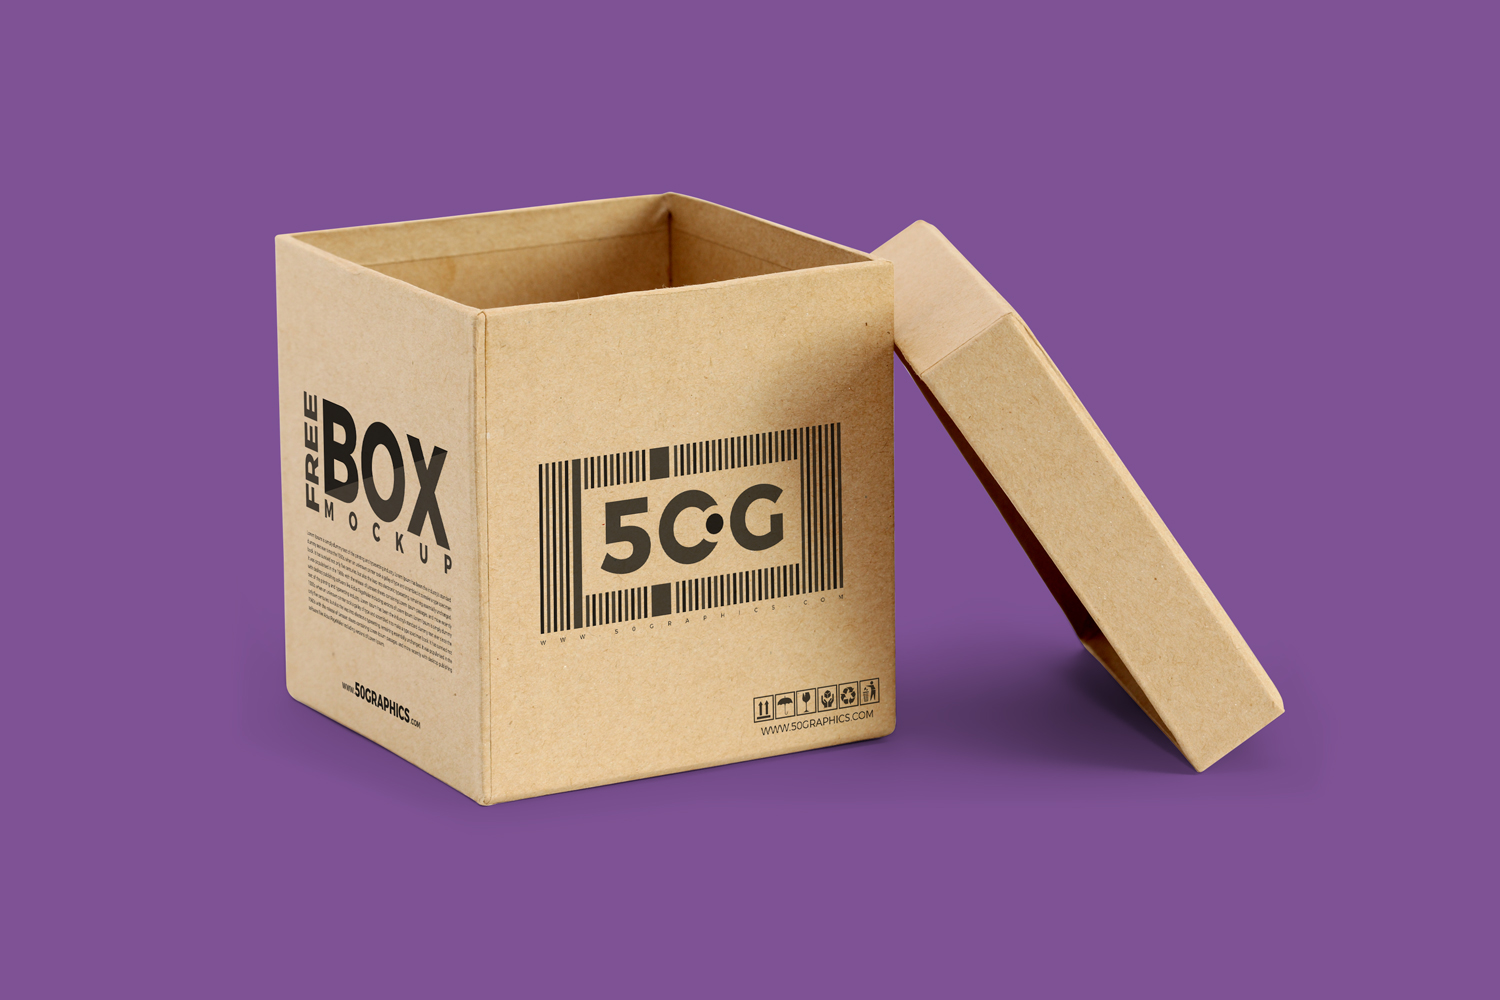 Free-Moving-Packaging-Box-Mockup